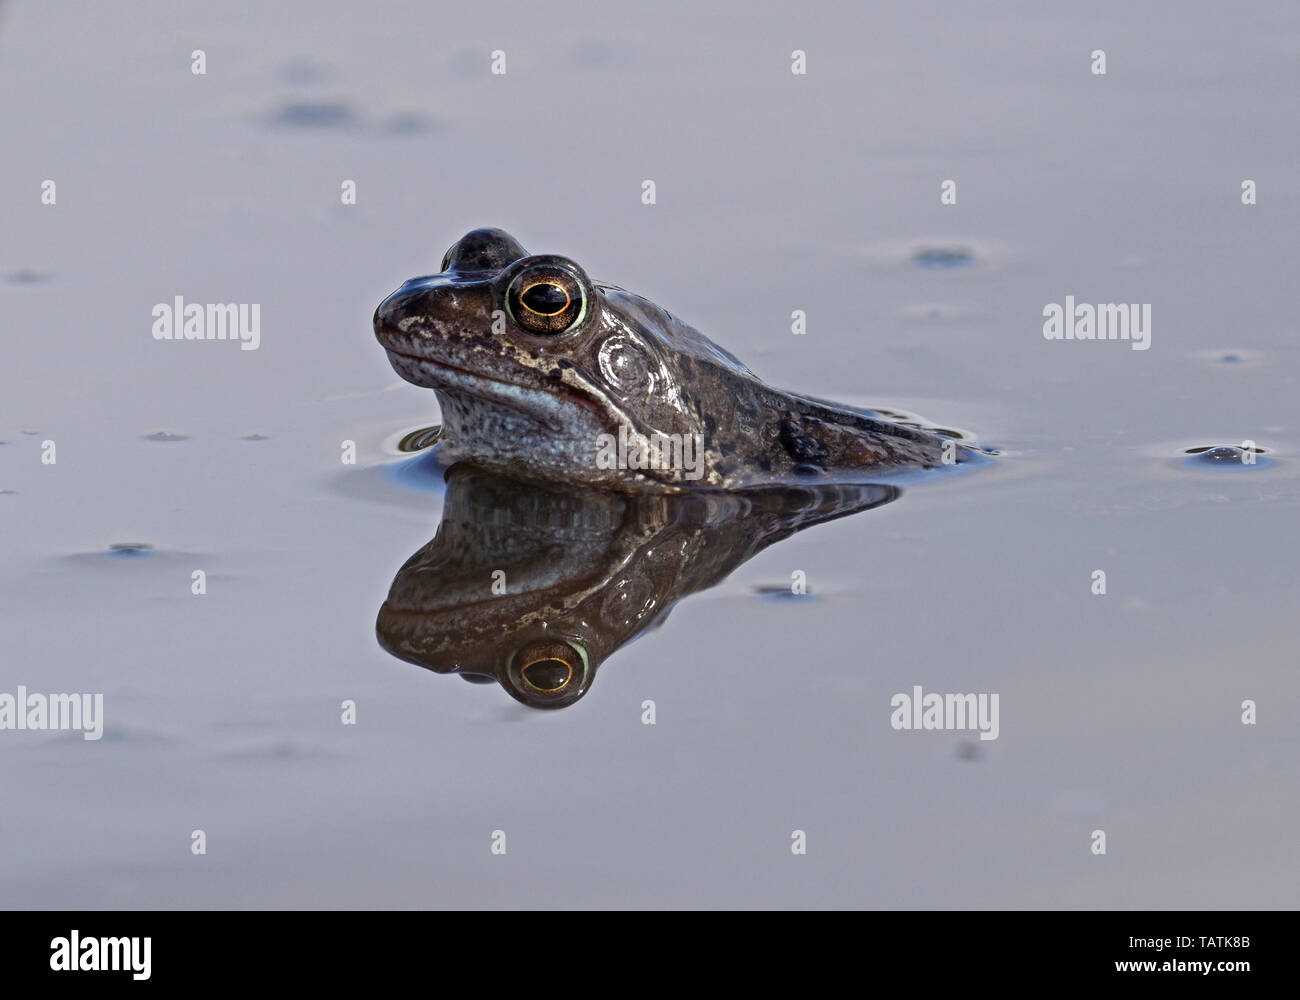 single European common frog (Rana temporaria) with reflection in muddy upland breeding pool in Cumbria, England, UK - Stock Image